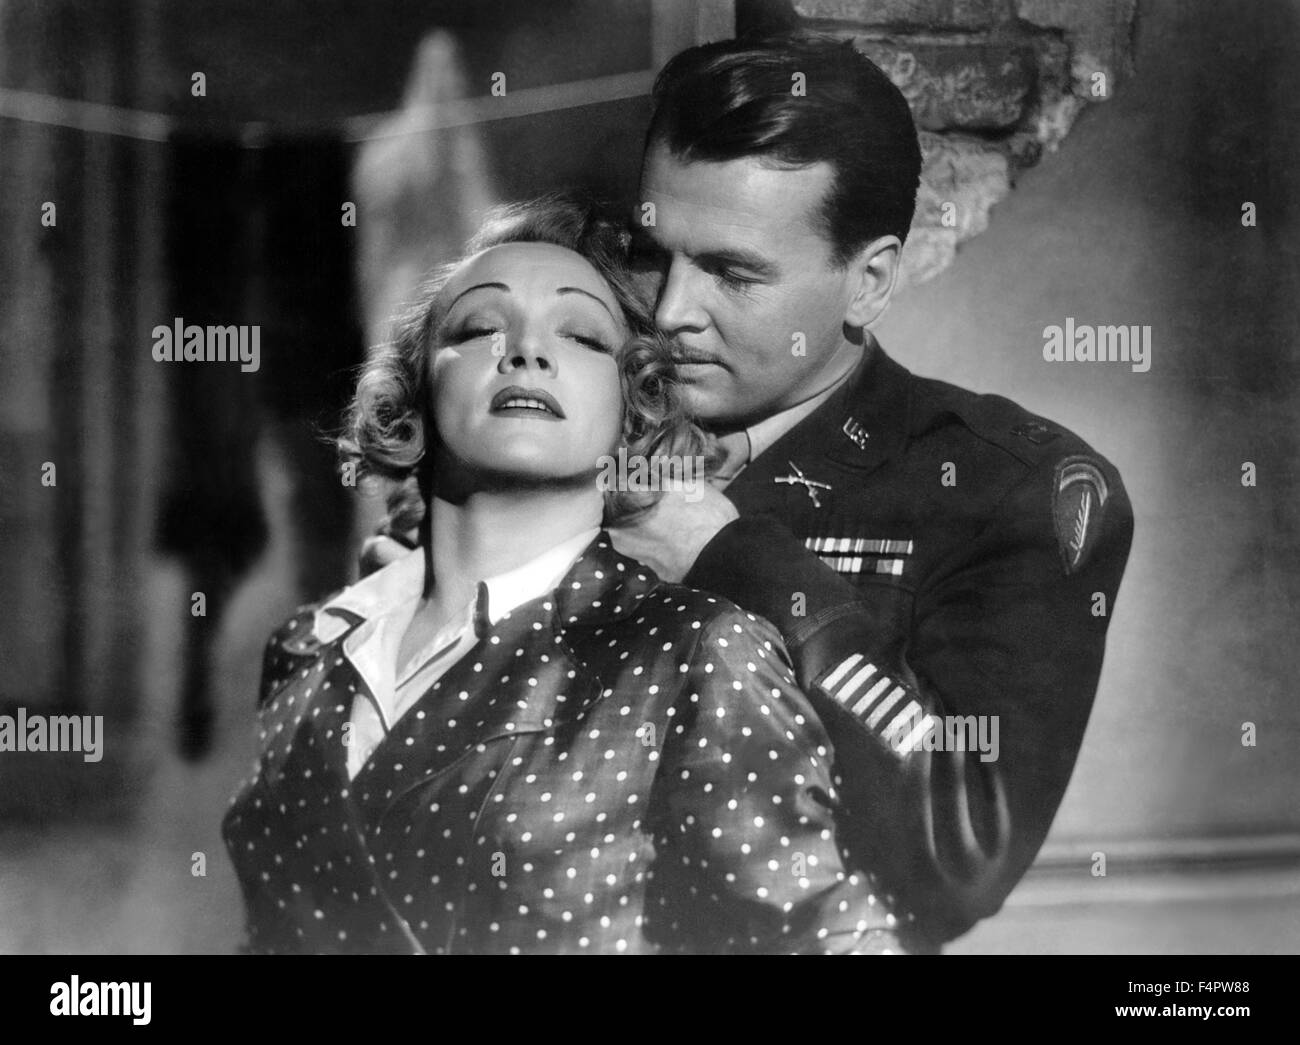 Marlene Dietrich and John Lund / A foreign affair / 1948 directed by Billy Wilder [Paramount Pictures] - Stock Image